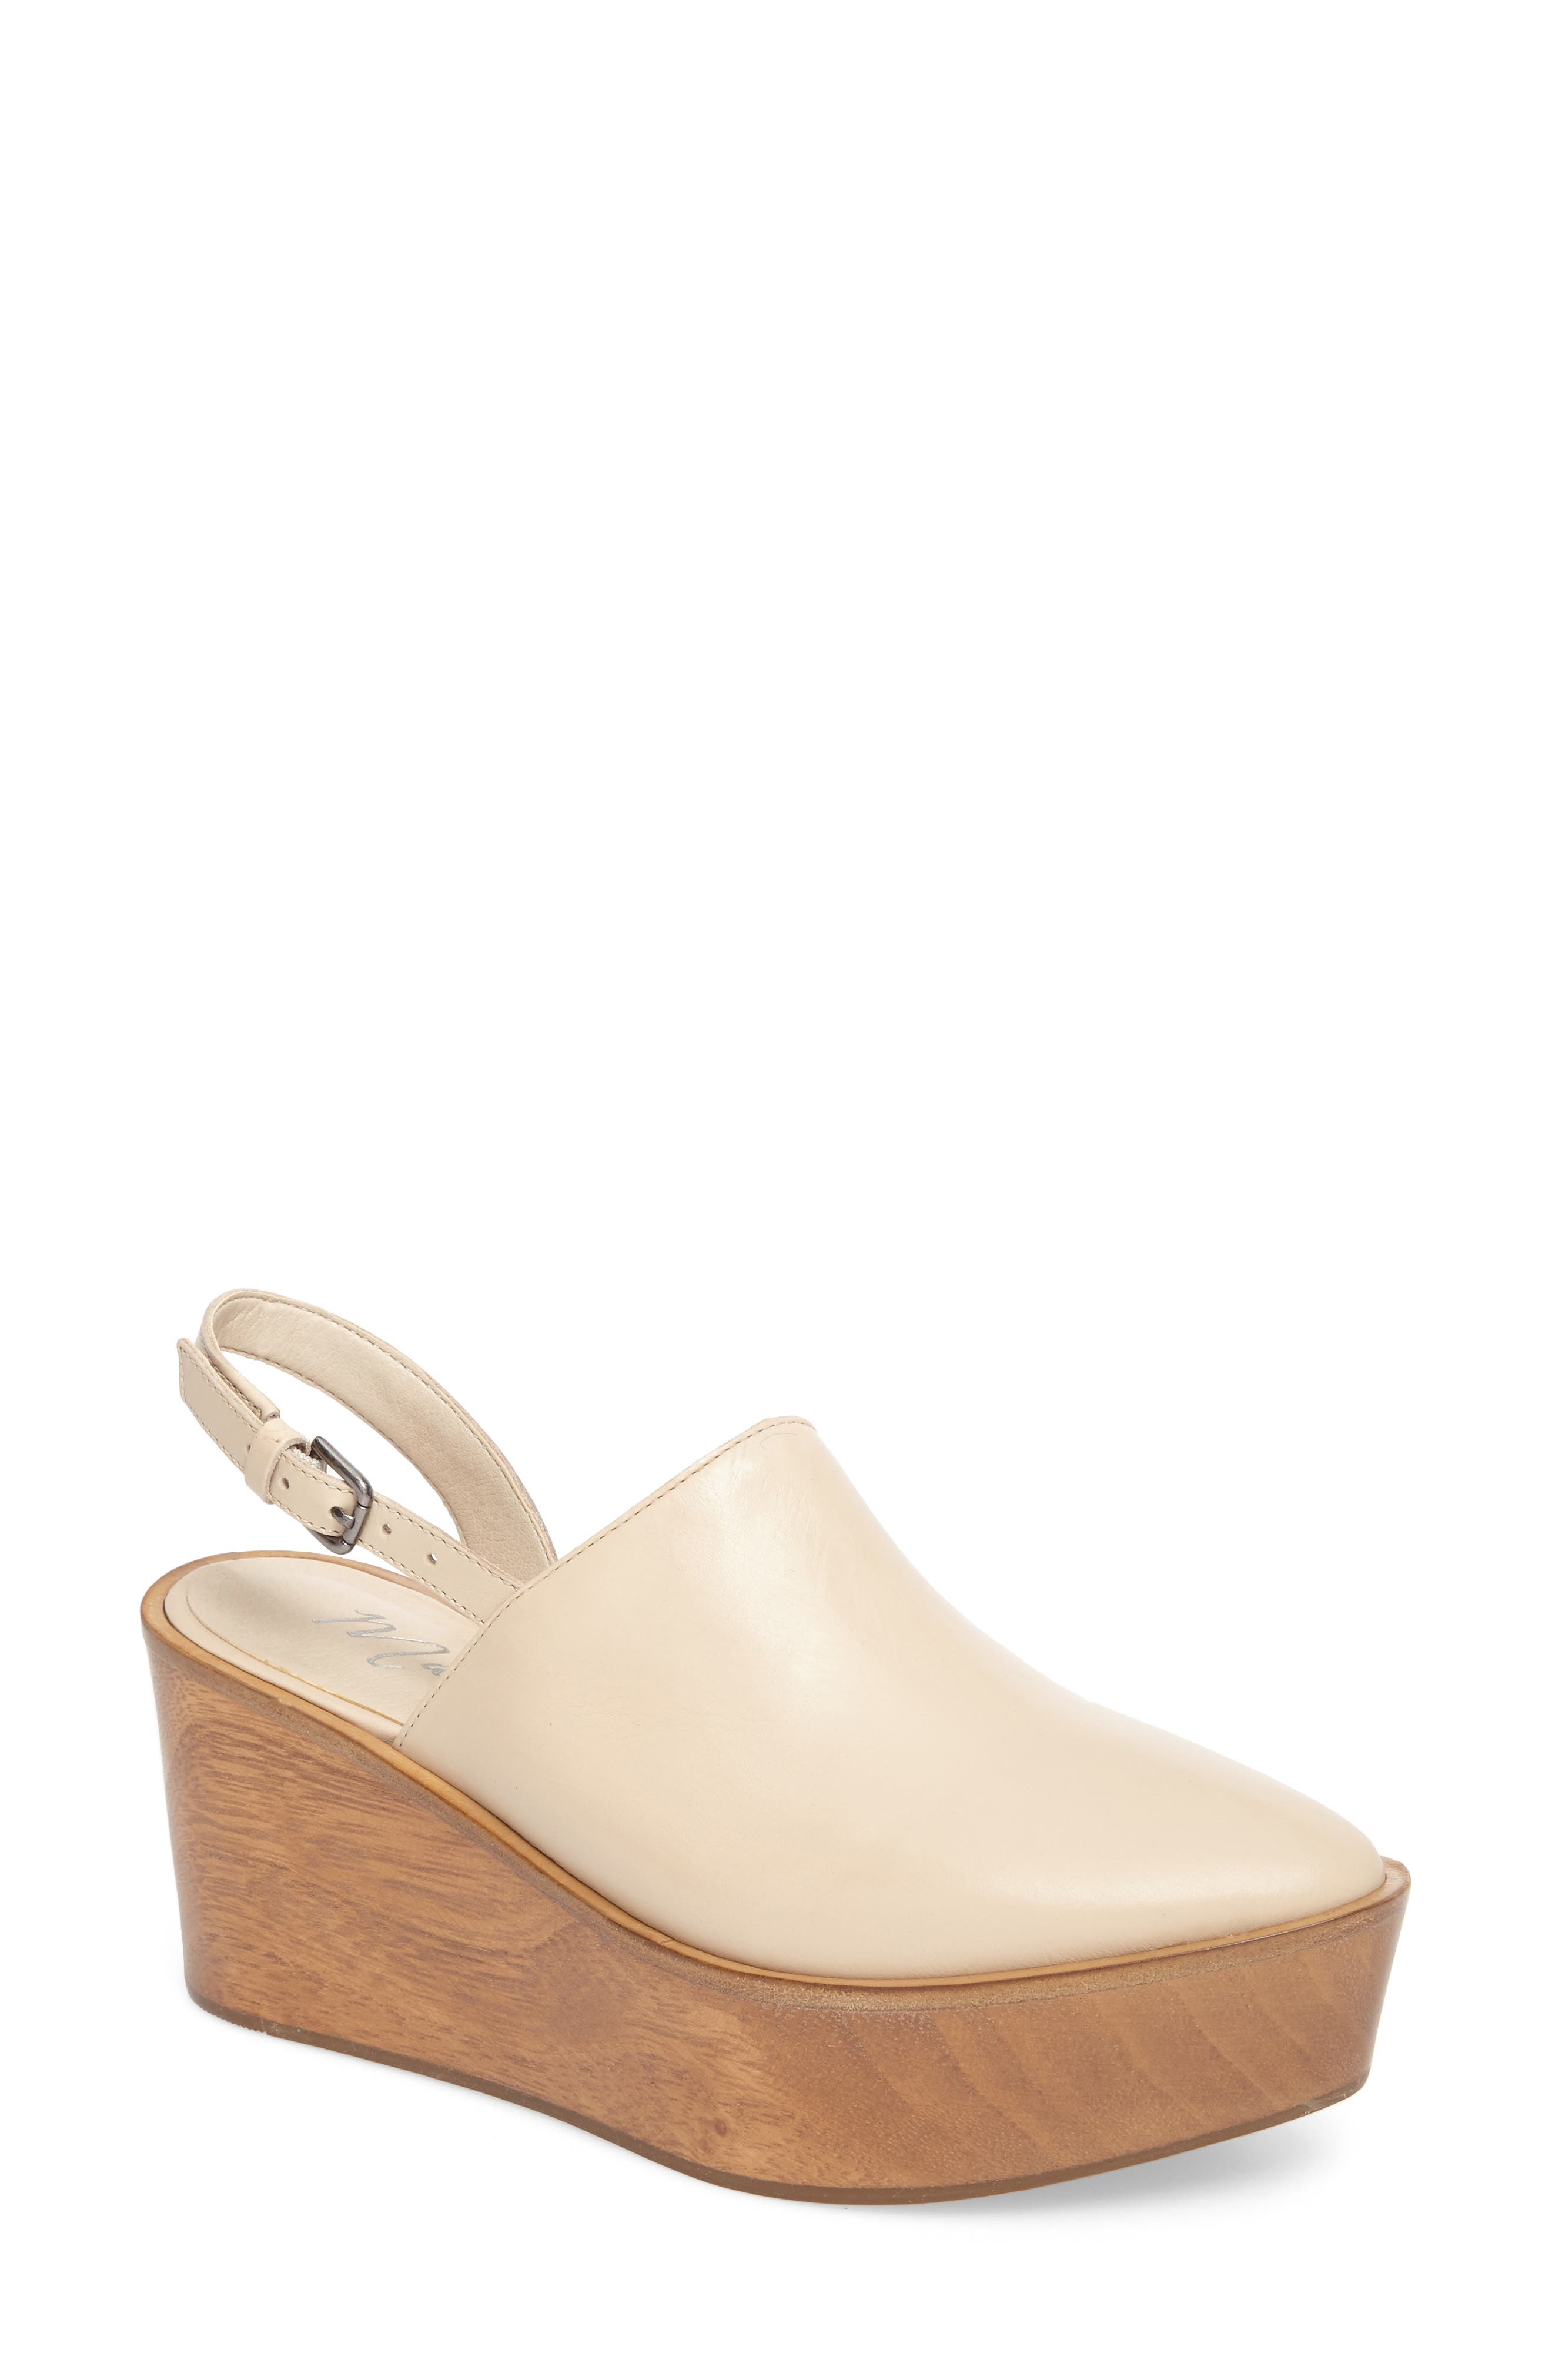 Eyals Slingback Platform Wedge Sandal,                         Main,                         color, NATURAL LEATHER